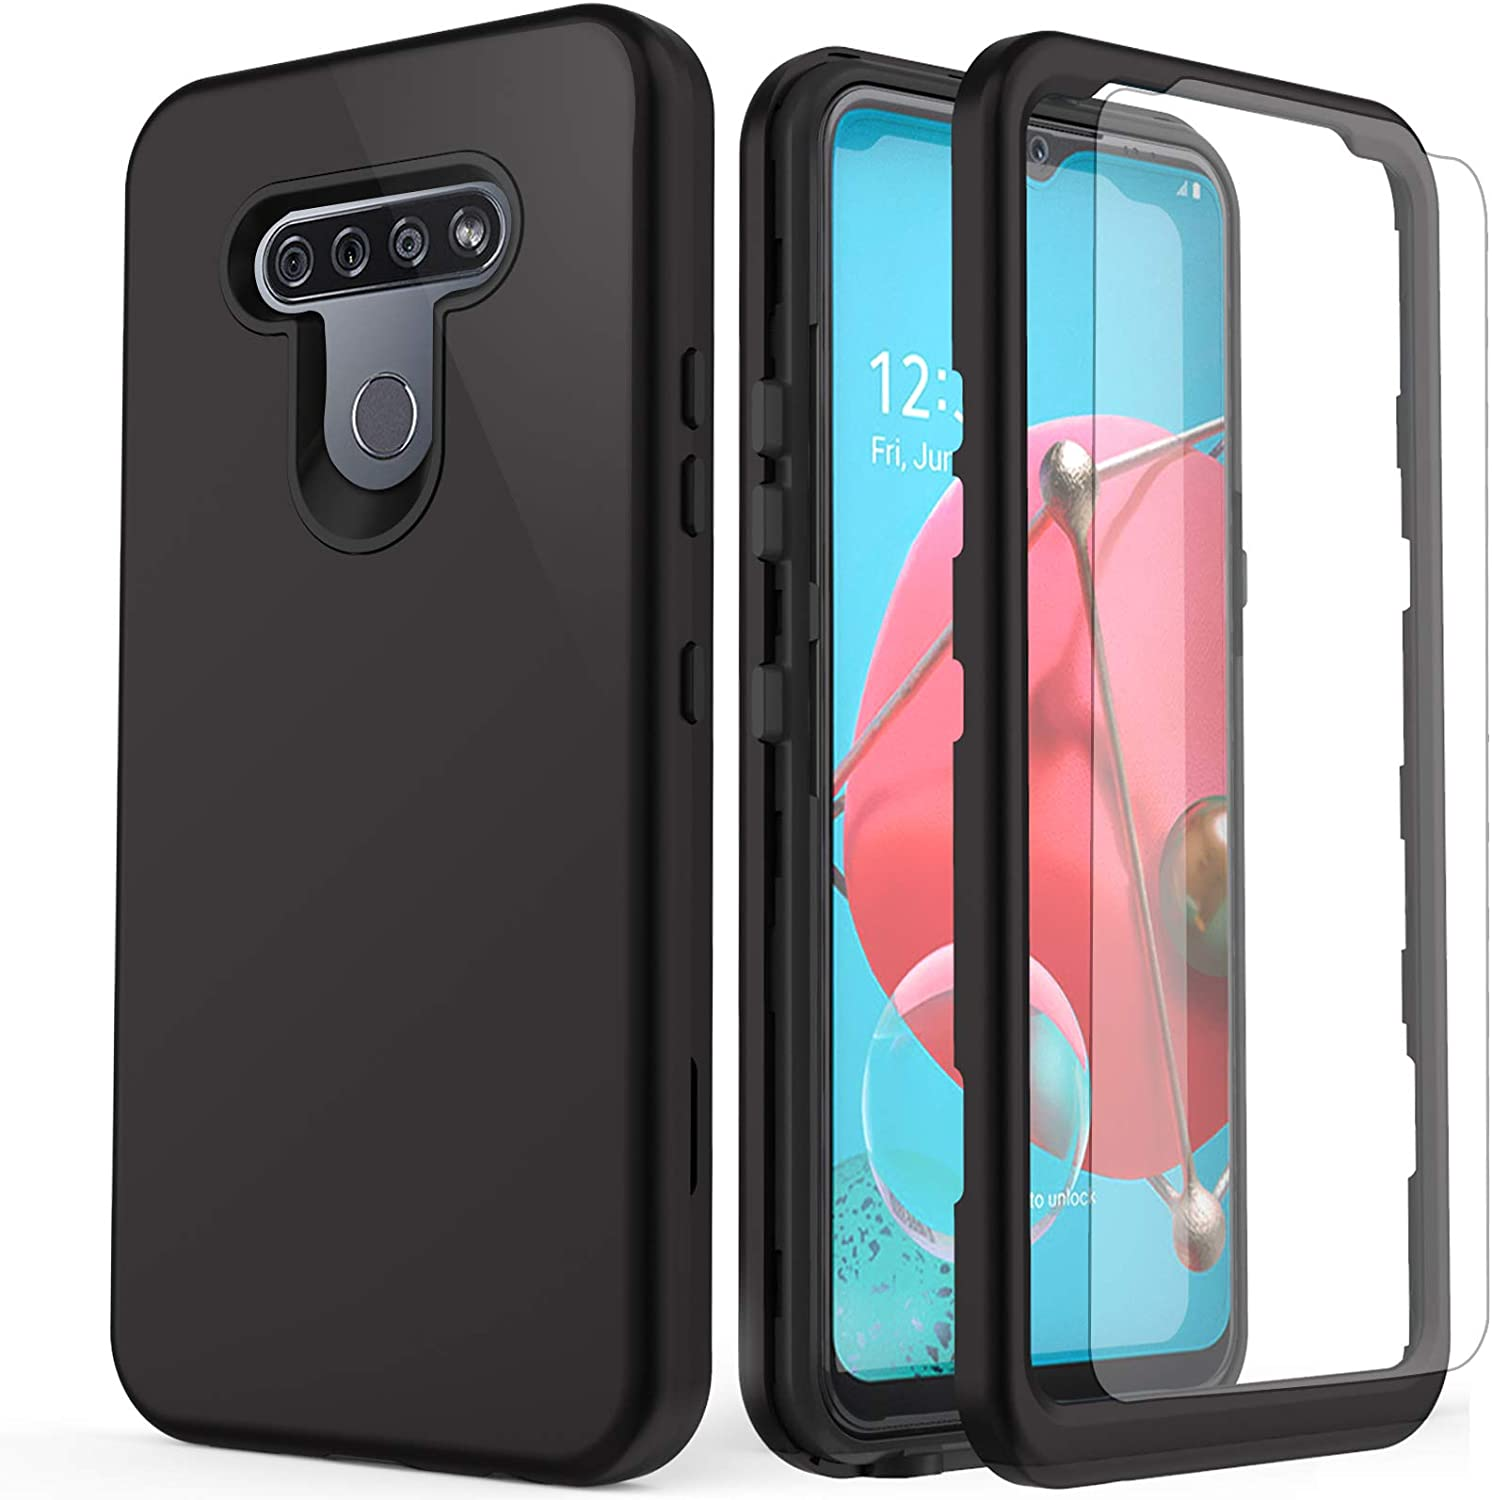 AMENQ Case for LG K51 Phone, Reflect L555DL/LG Q51 Case, [Built-in Screen Protector] Three Layers Full Body Heavy Duty Shockproof TPU Bumper and PC Armor Hard Protective Phone Cover (Black)